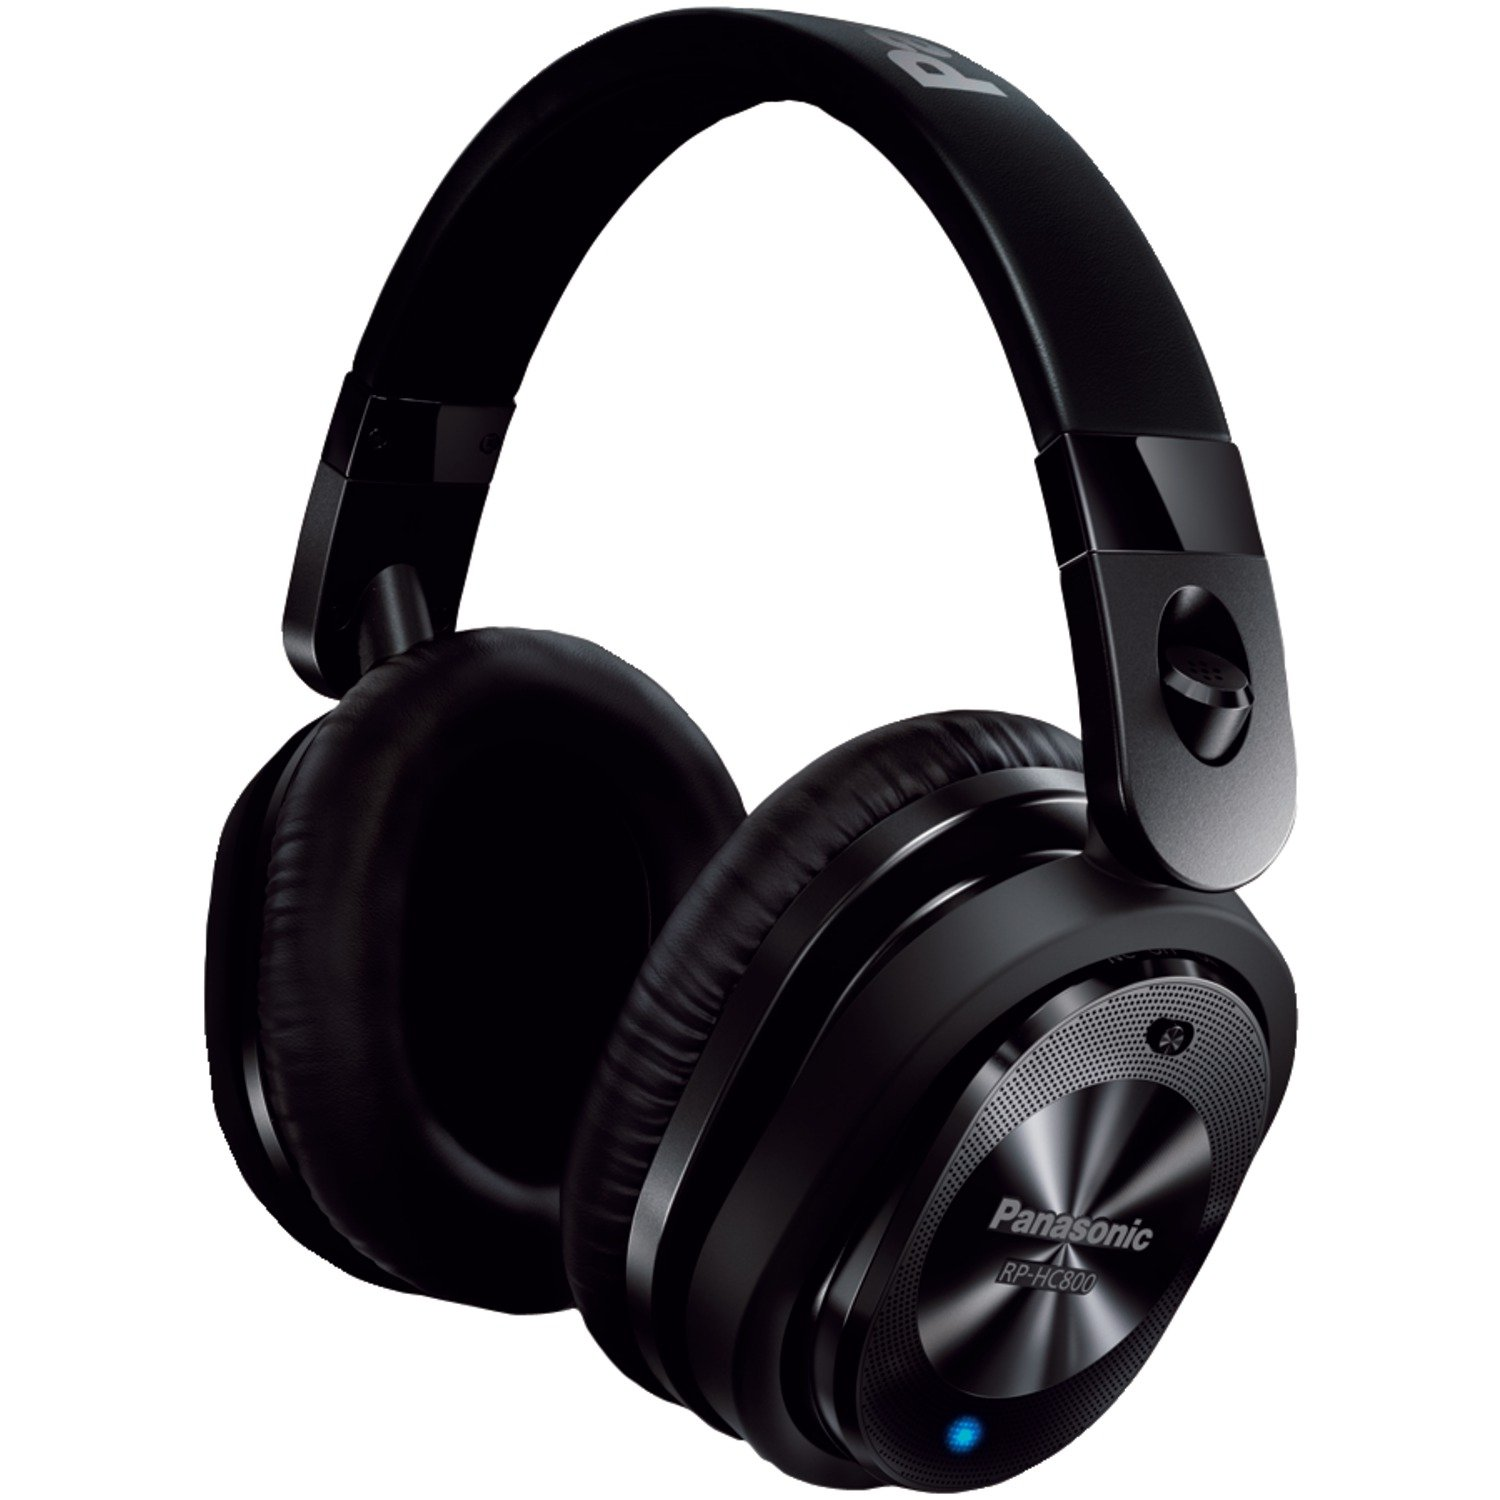 Panasonic Premium Noise Cancelling Over-the-Ear Stereo Headphones with Mic/Controller RP-HC800-K (Black) by Panasonic